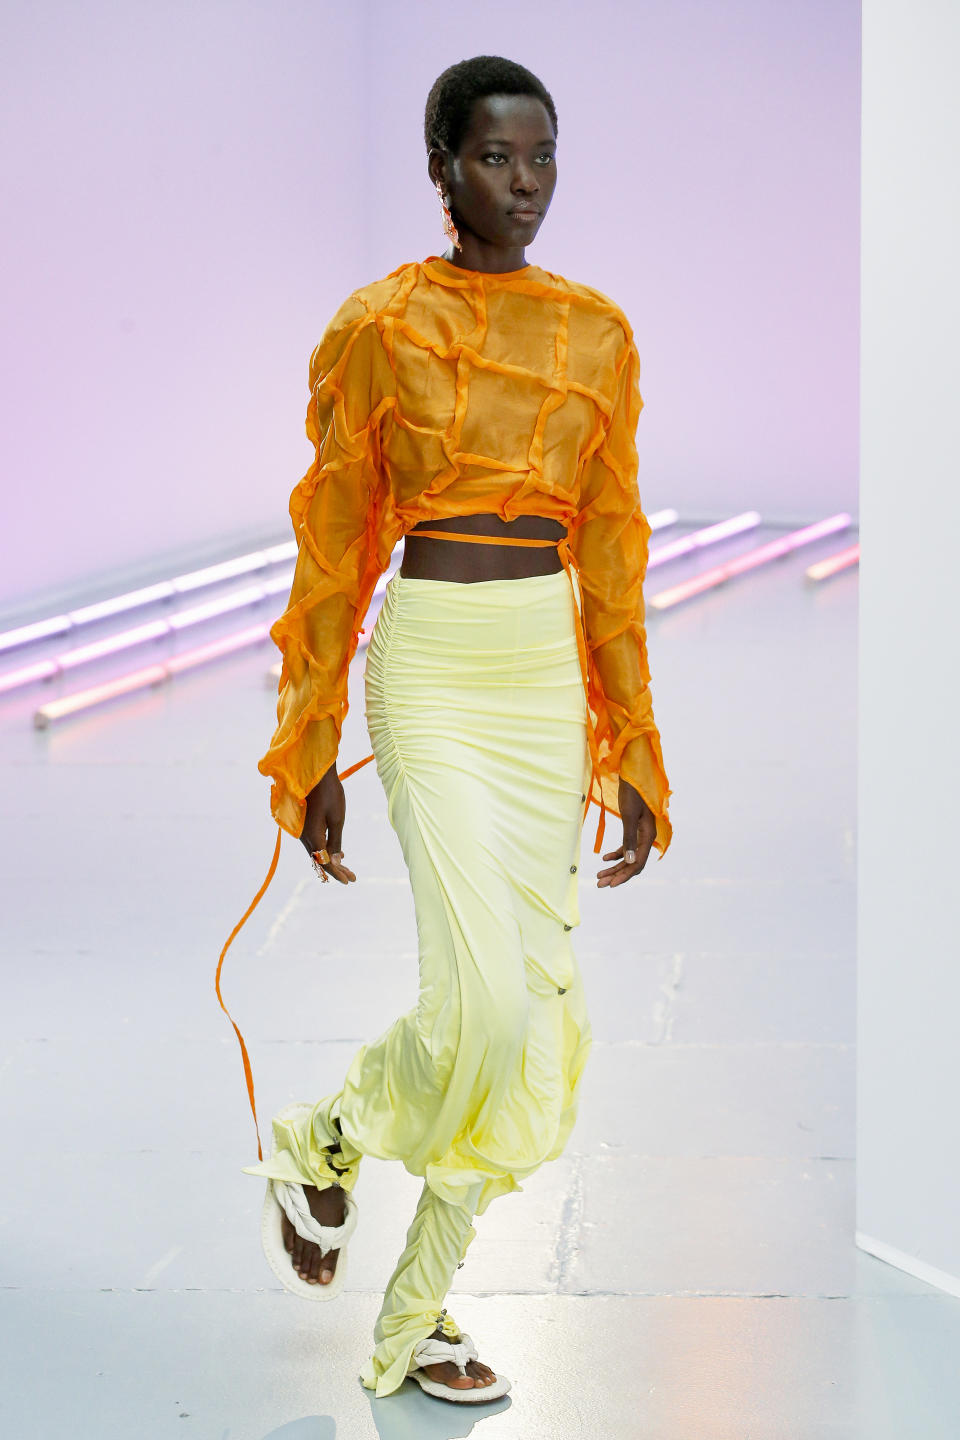 PARIS, FRANCE - SEPTEMBER 30: A model walks the runway during the Acne Studios Ready to Wear  Spring/Summer 2021 fashion show as part of Paris Fashion Week on September 30, 2020 in Paris, France. (Photo by Victor VIRGILE/Gamma-Rapho via Getty Images)